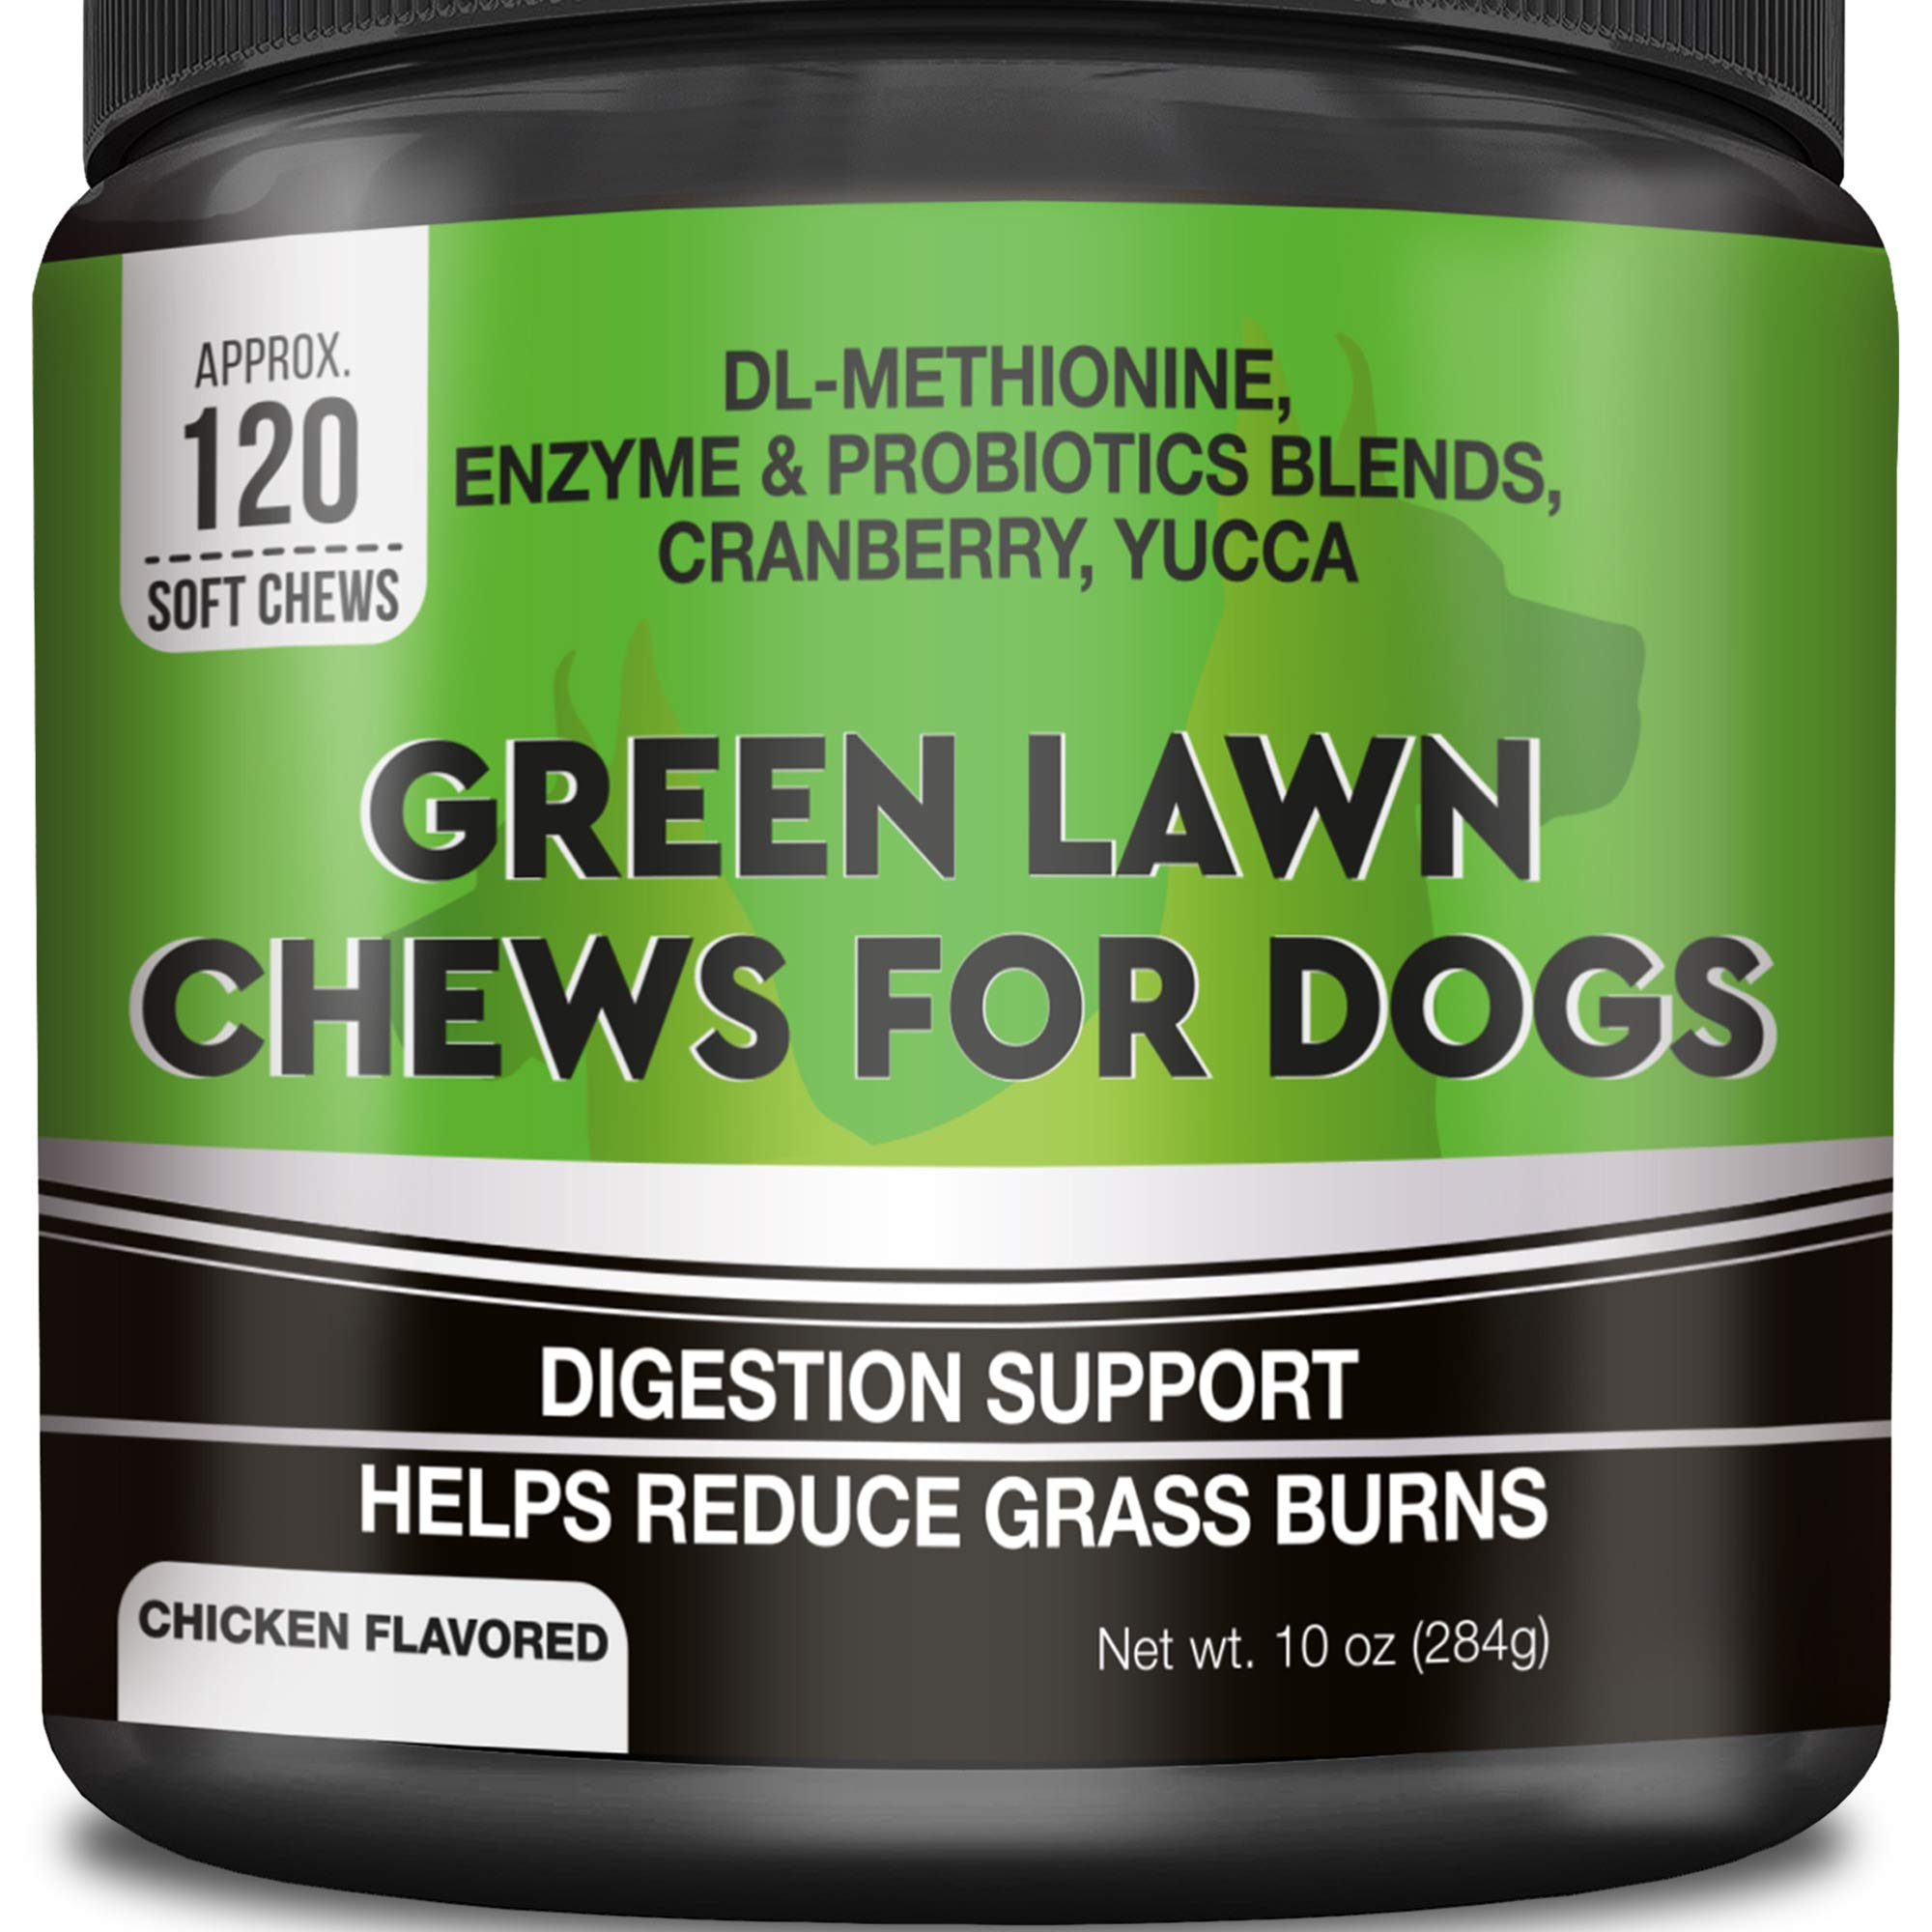 GOODGROWLIES Grass Saver for Dogs - Dog Pee Lawn Repair Treats - Grass Burn Spots Caused by Dog Urine - Grass Saver Rocks with Probiotics + Digestive Enzymes, Cranberry - Made in USA - 120 Soft Chews by GOODGROWLIES